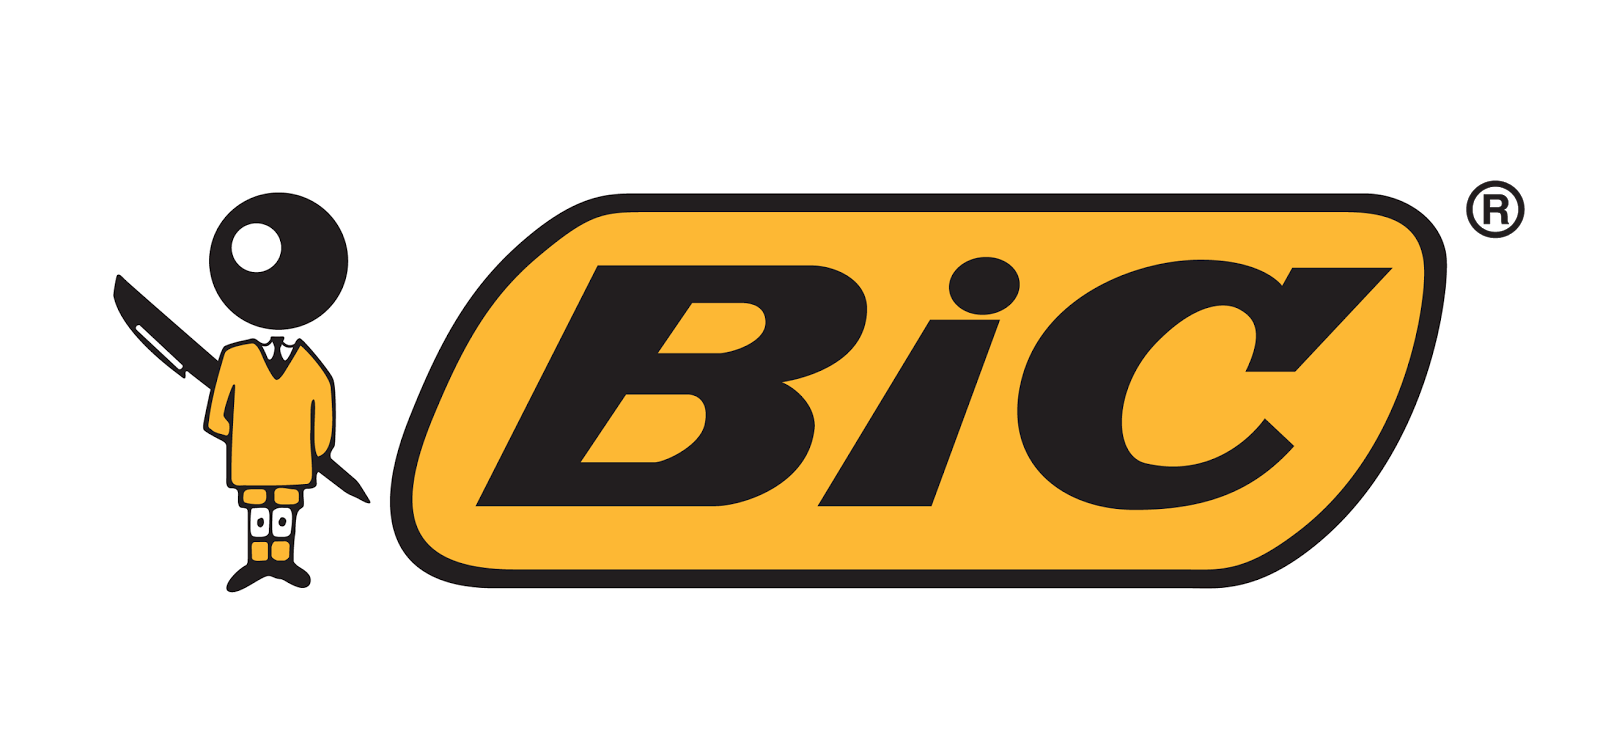 photograph about Bic Razor Coupons Printable referred to as Coupon STL: Fresh Bic Razor Printable Discount coupons